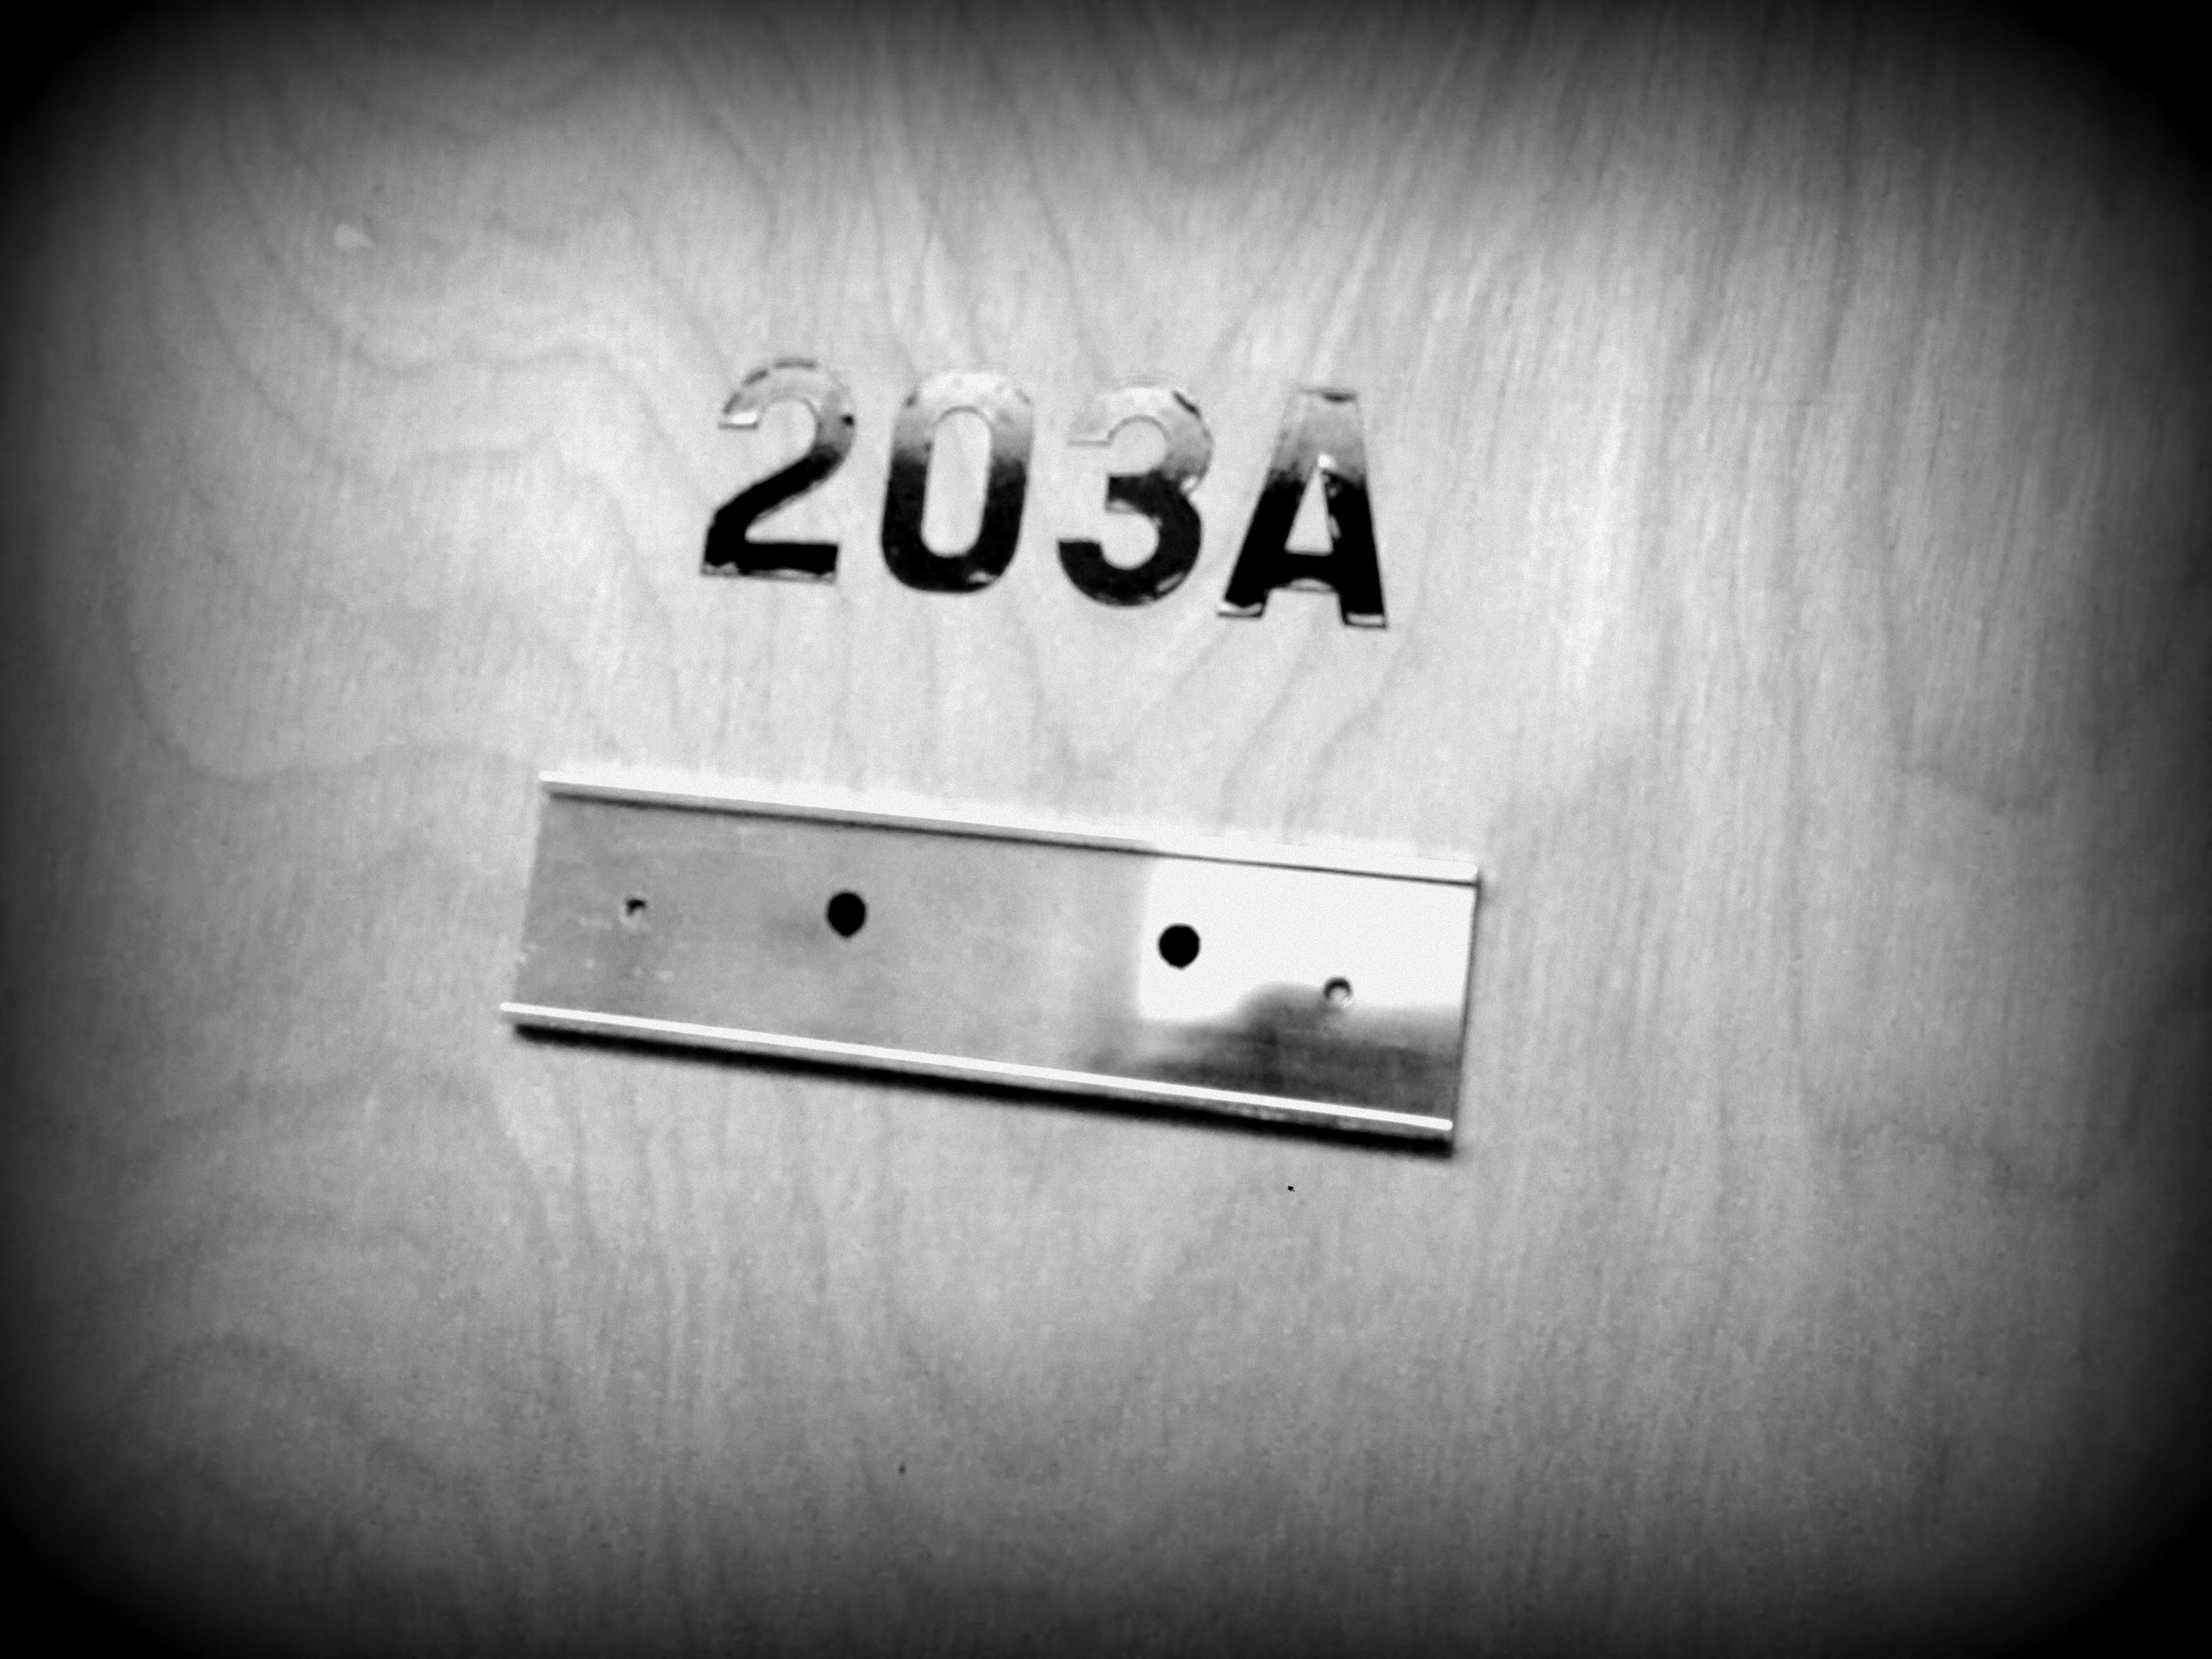 I can't really imagine a better number than 203A.